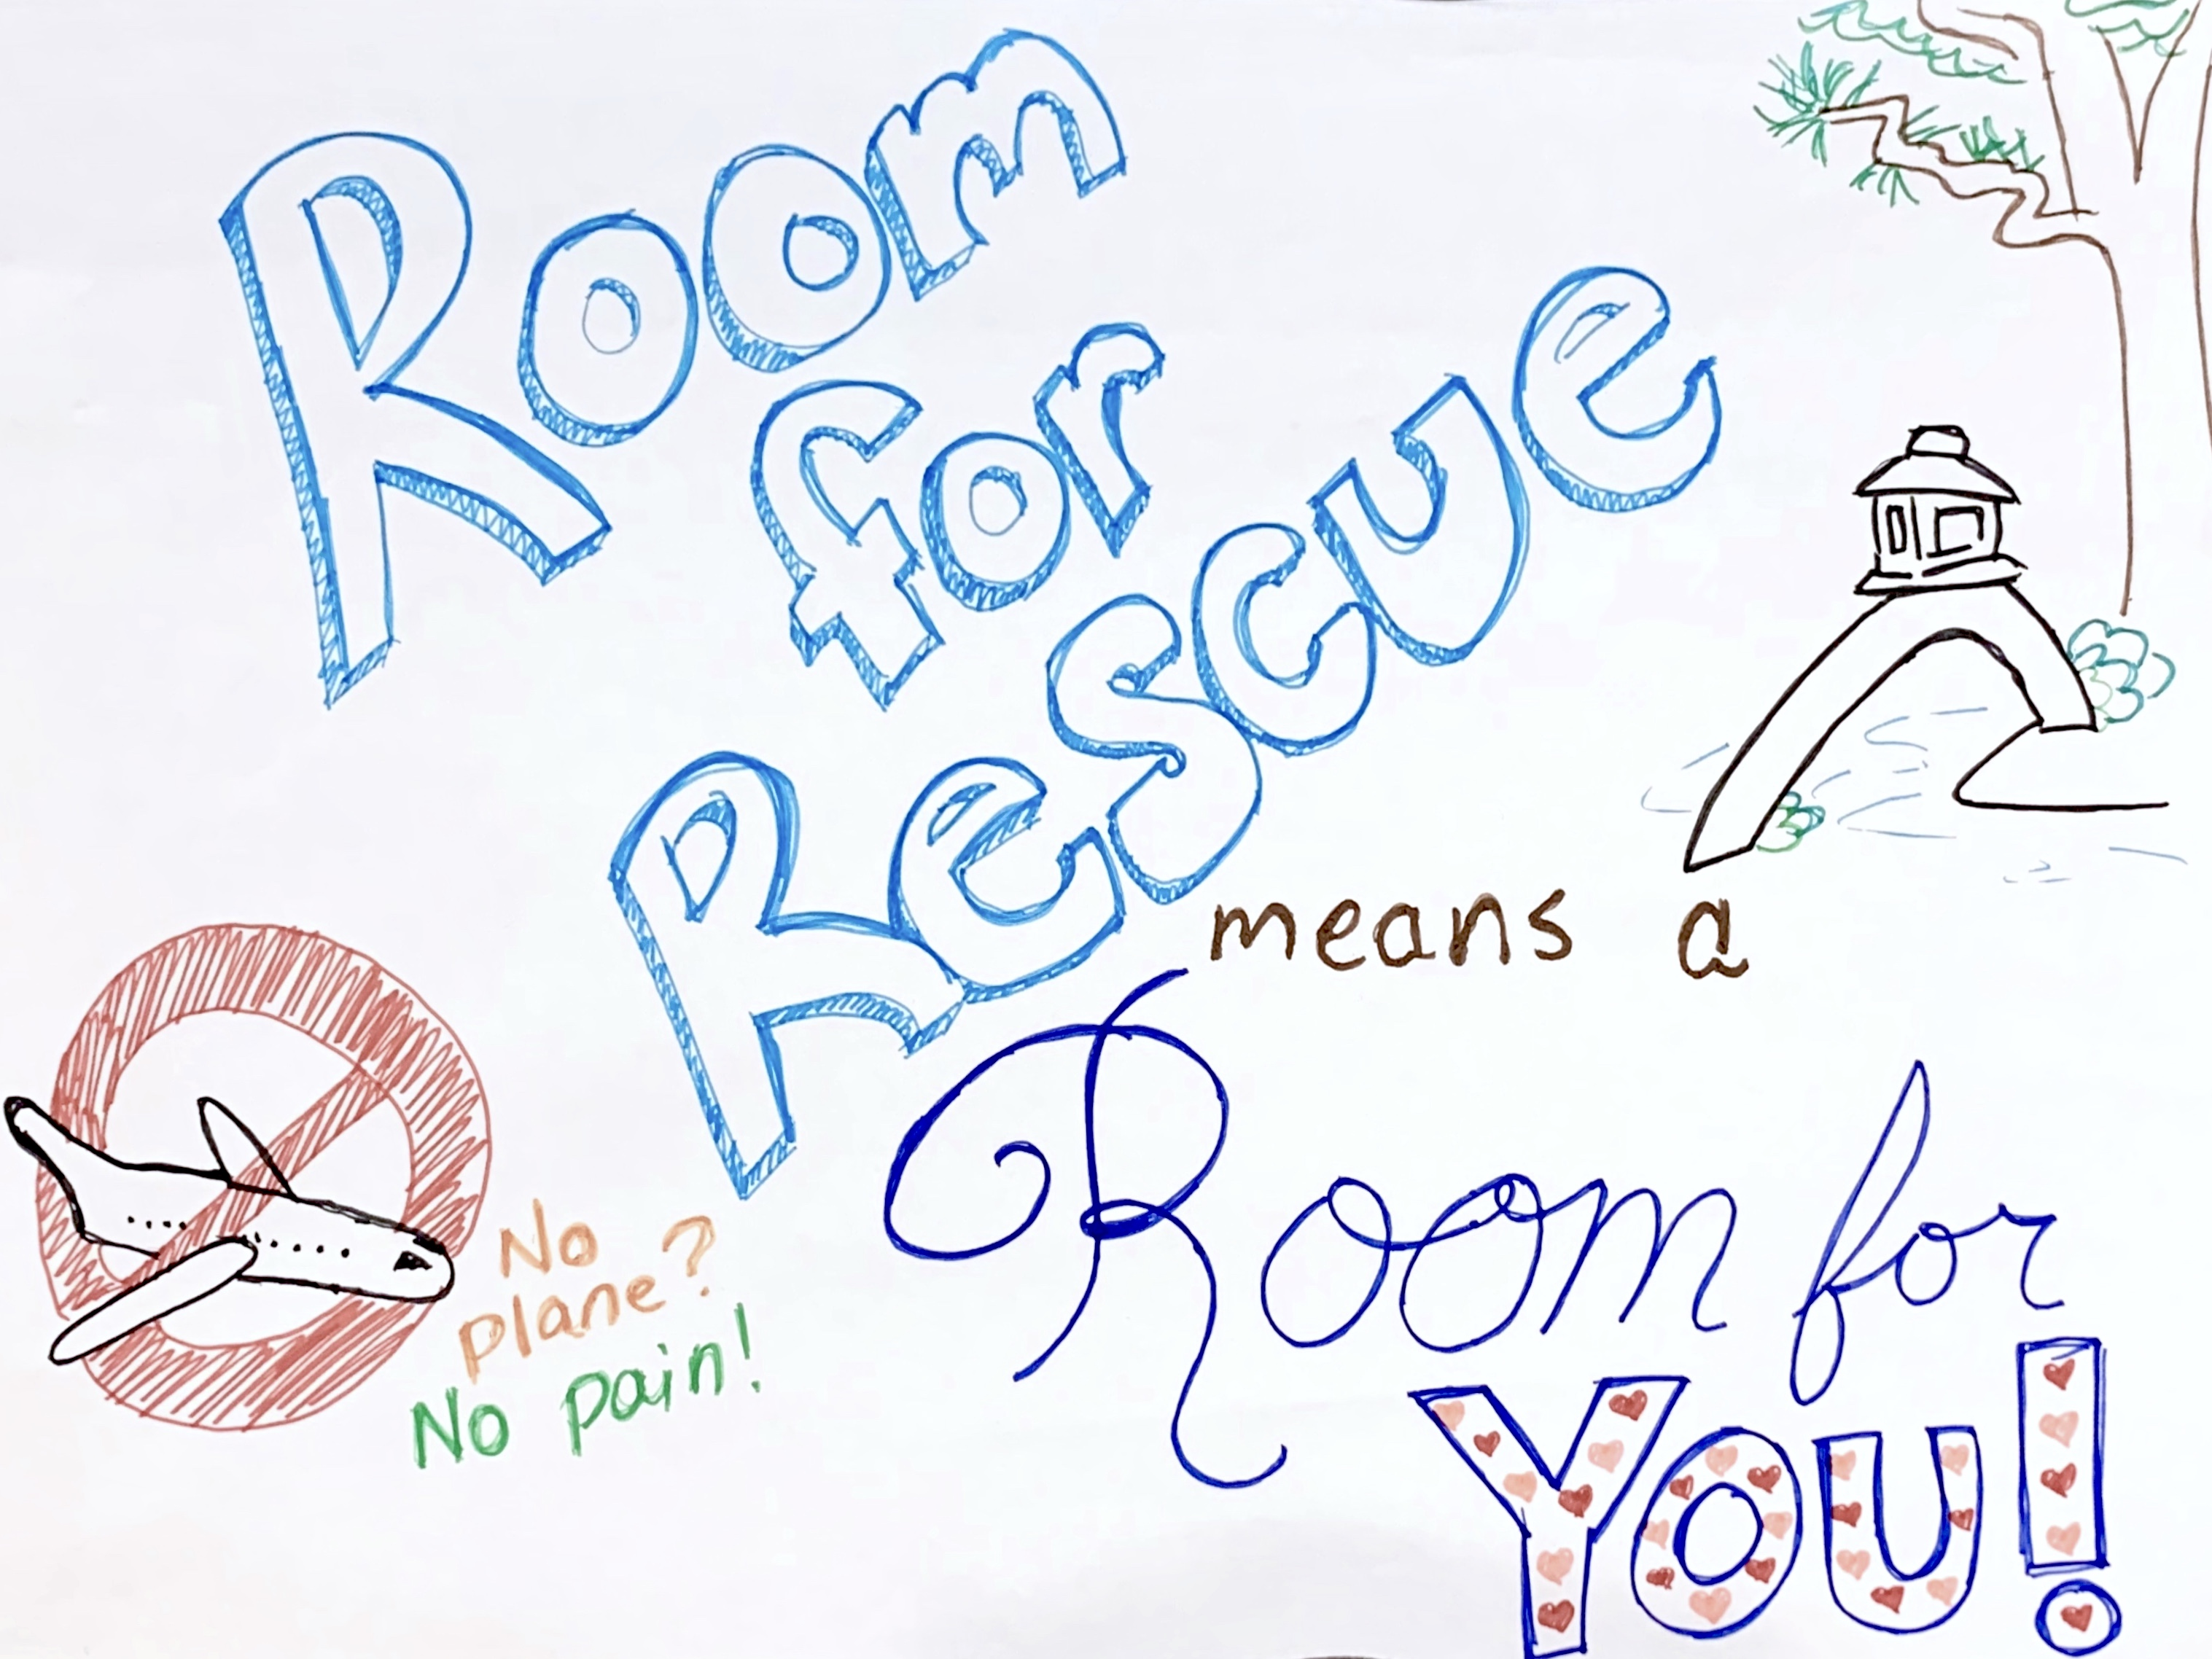 """Room for Rescue"" poster, which reads, ""Room for Rescue means a room for you!"" and ""No plane? No pain."""